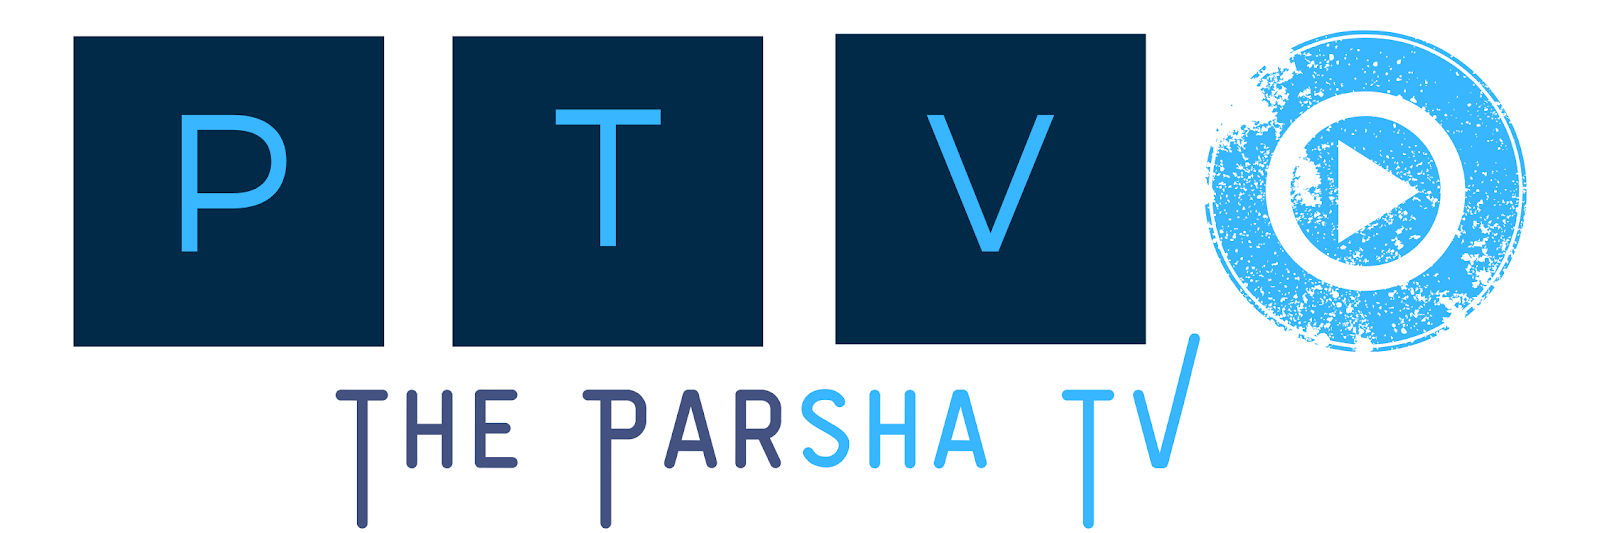 The Parsha TV